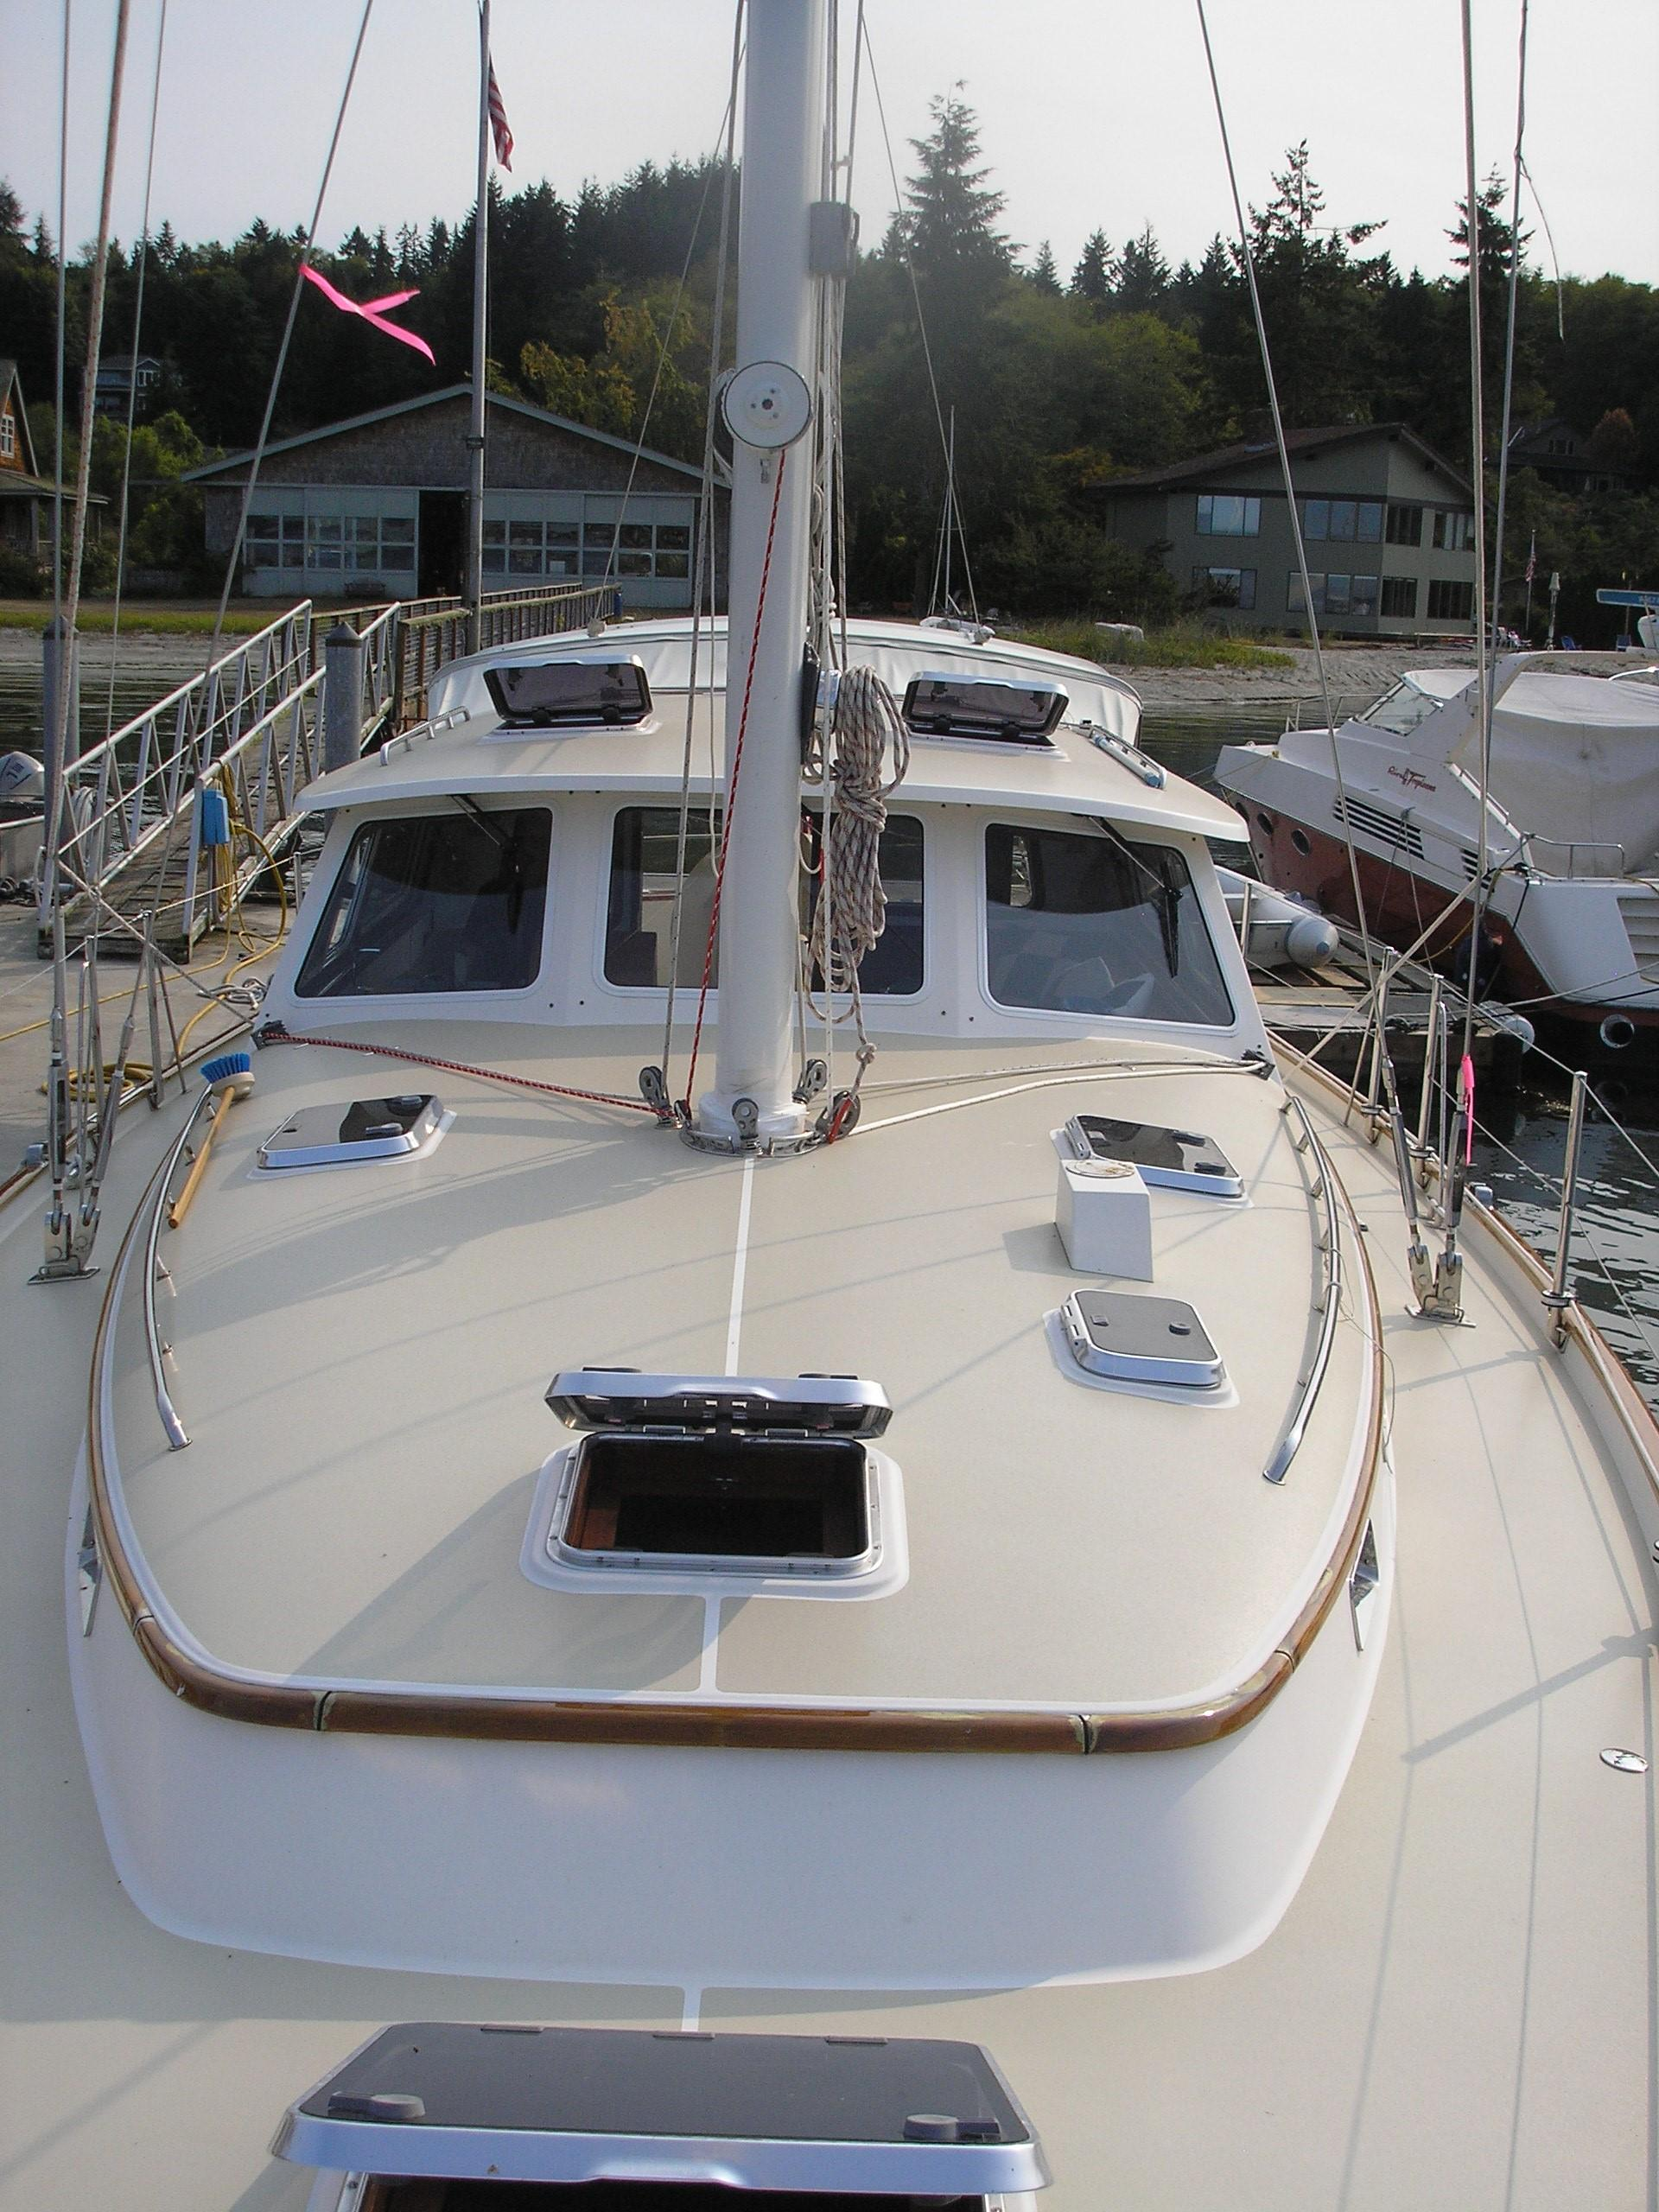 matthew yachts inc Used matthews boats for sale from boat brokers, owners  more boats from fillingham yacht sales, inc 56' 0 matthews my $224,000 250795 posted: november 9, 2015.